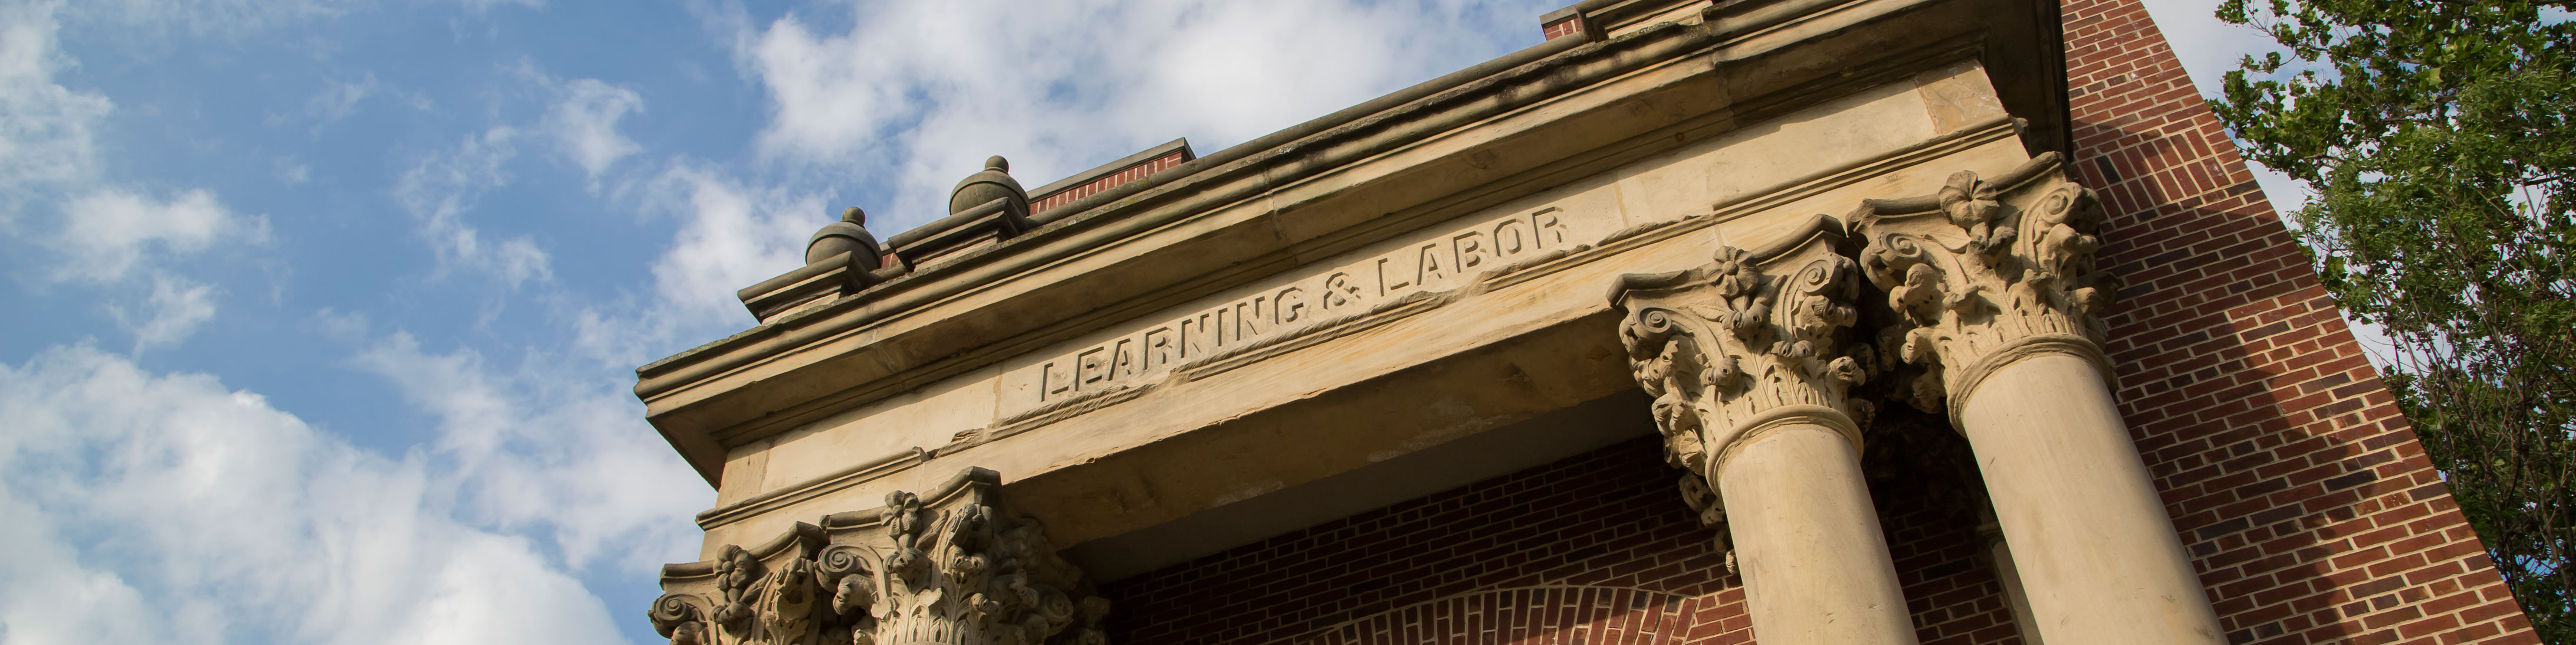 background image of learning and labor